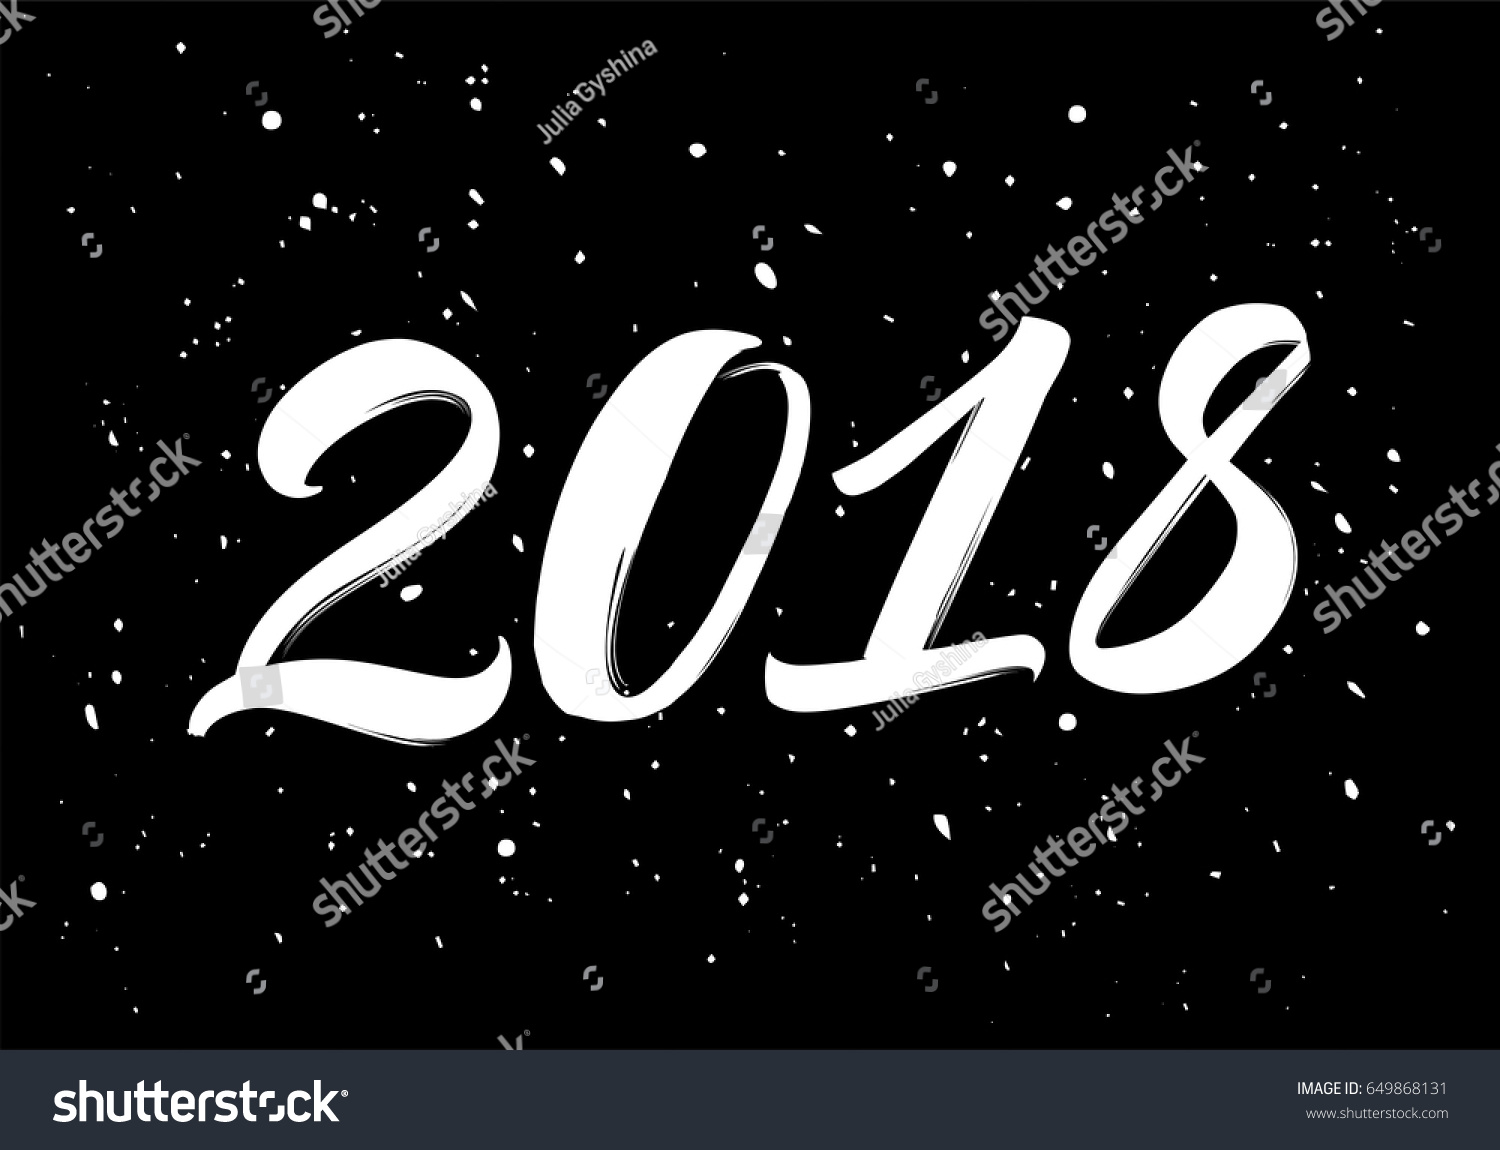 Hand drawn vector illustration 2018 year stock vector 649868131 hand drawn vector illustration of the 2018 year lettering for greeting card calendar kristyandbryce Images